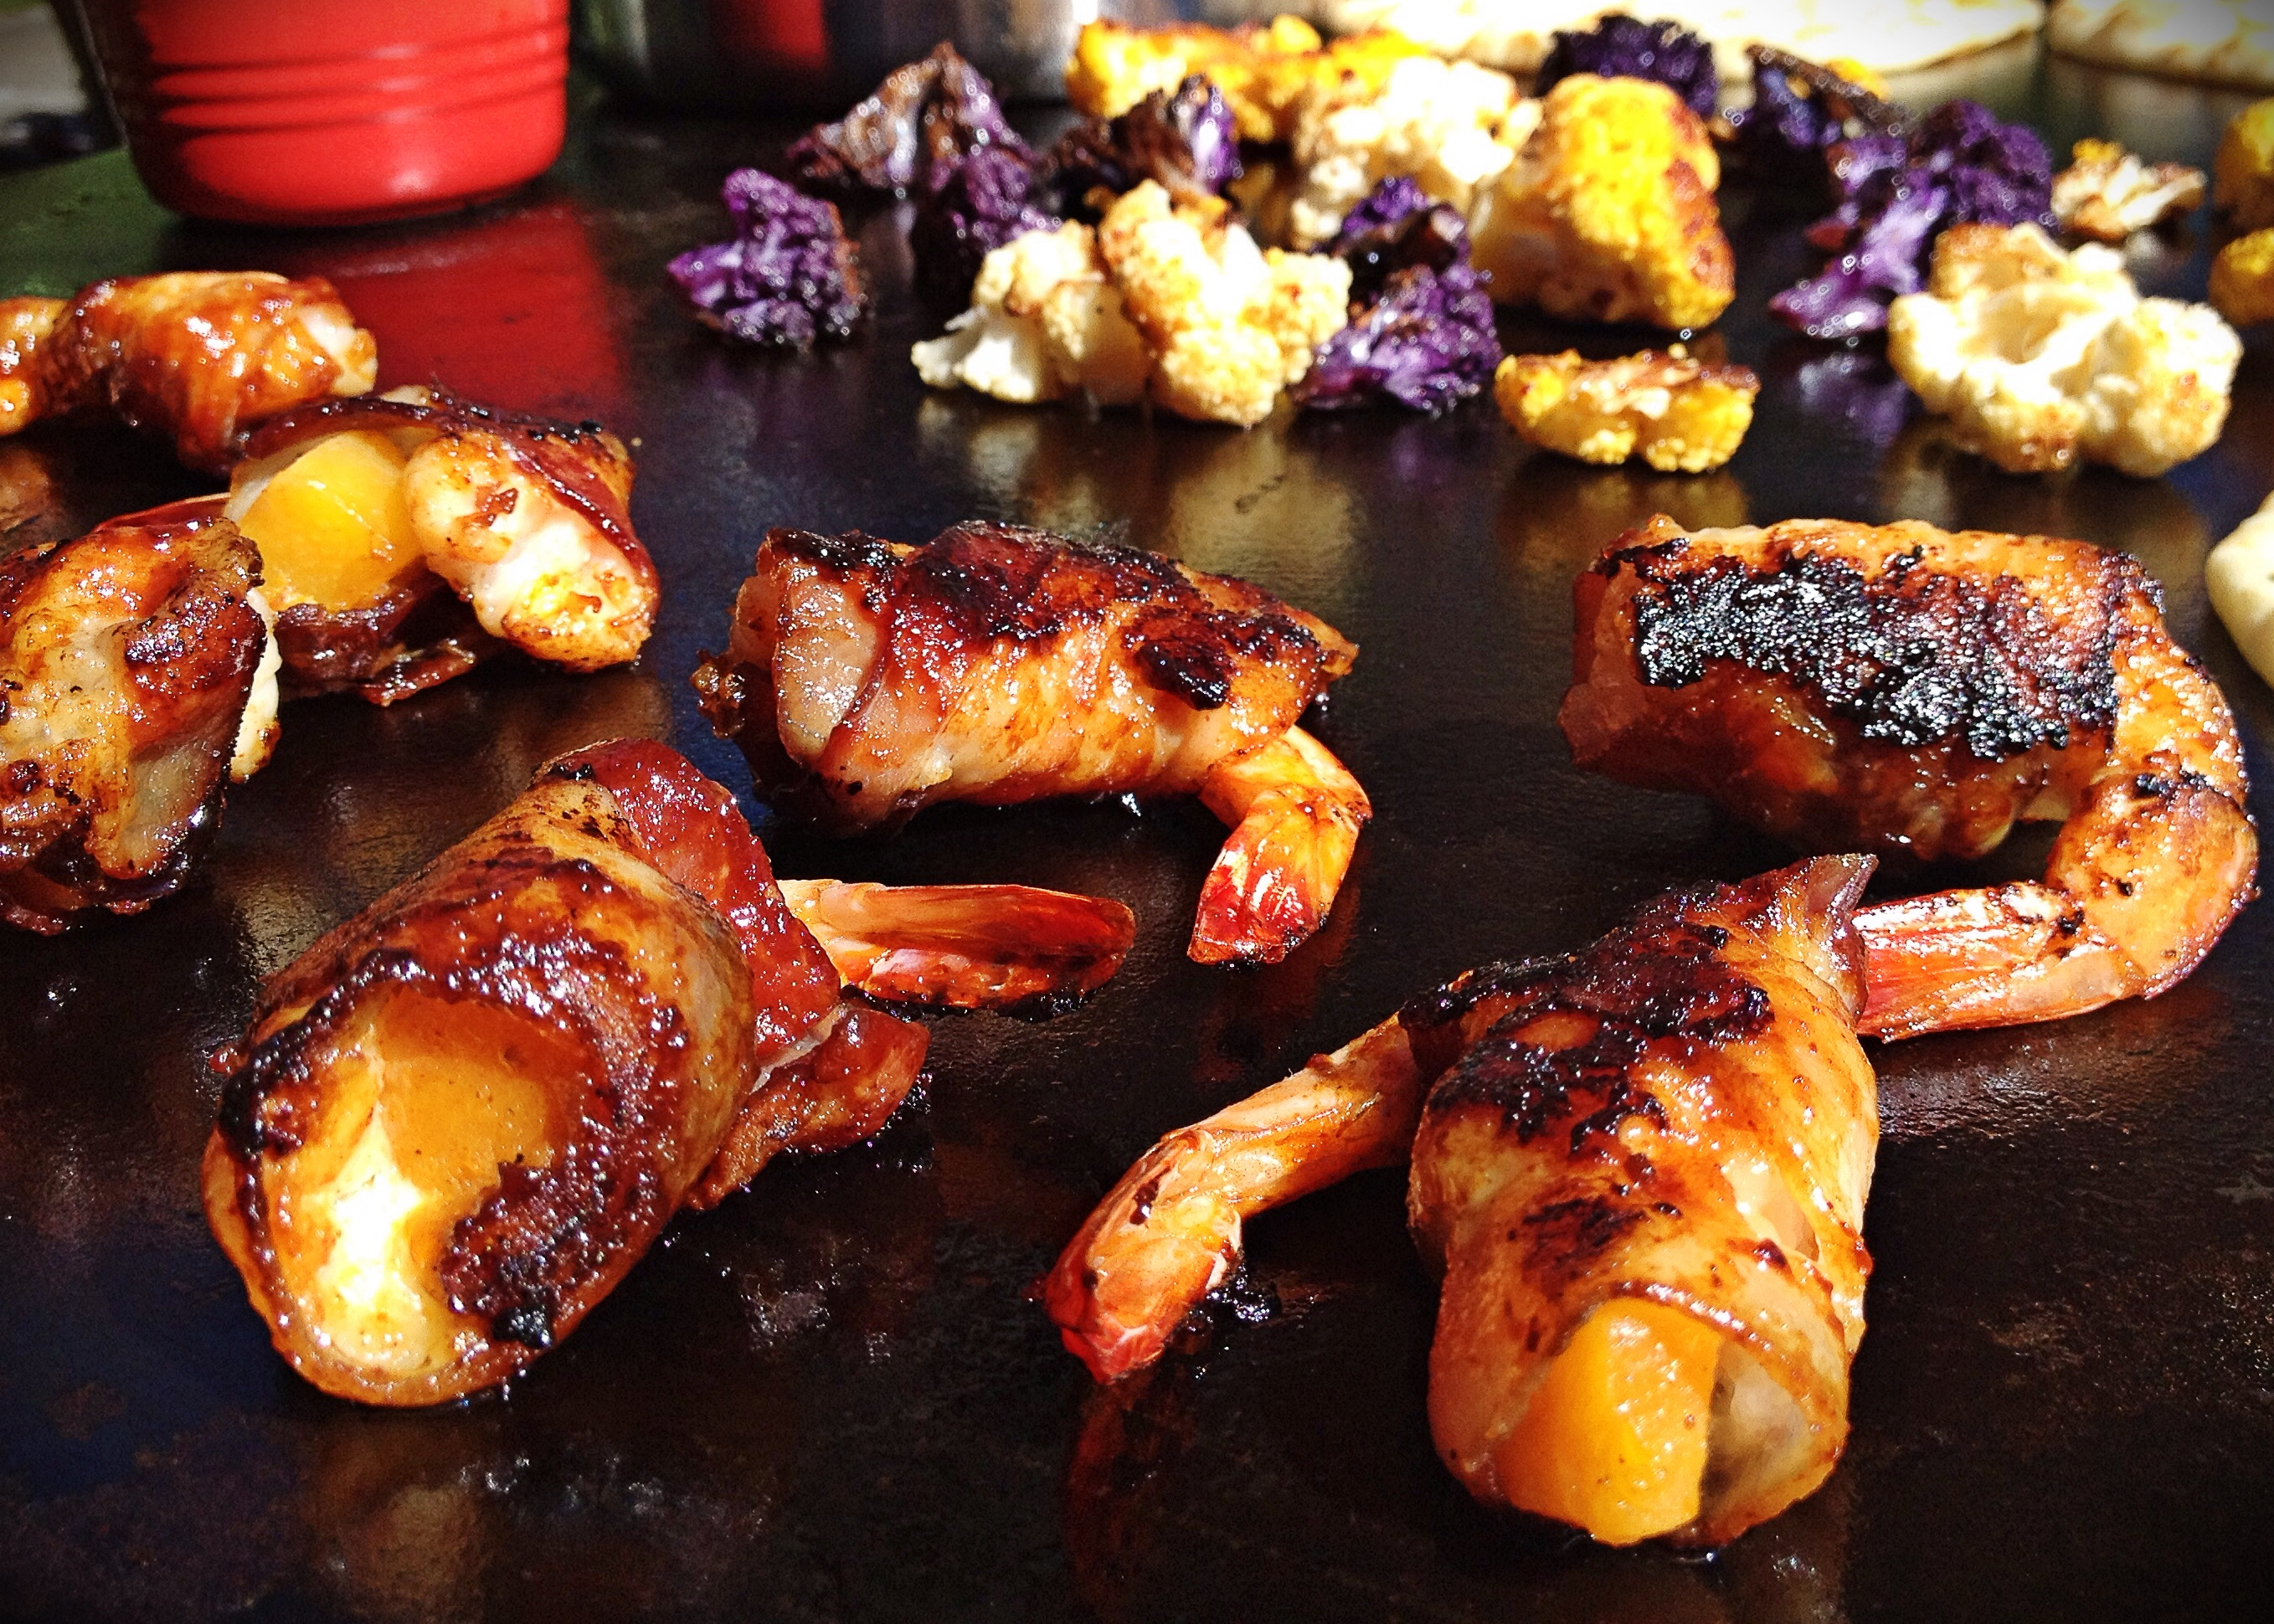 bbq shrimp stuffed with butternut squash on evo grill